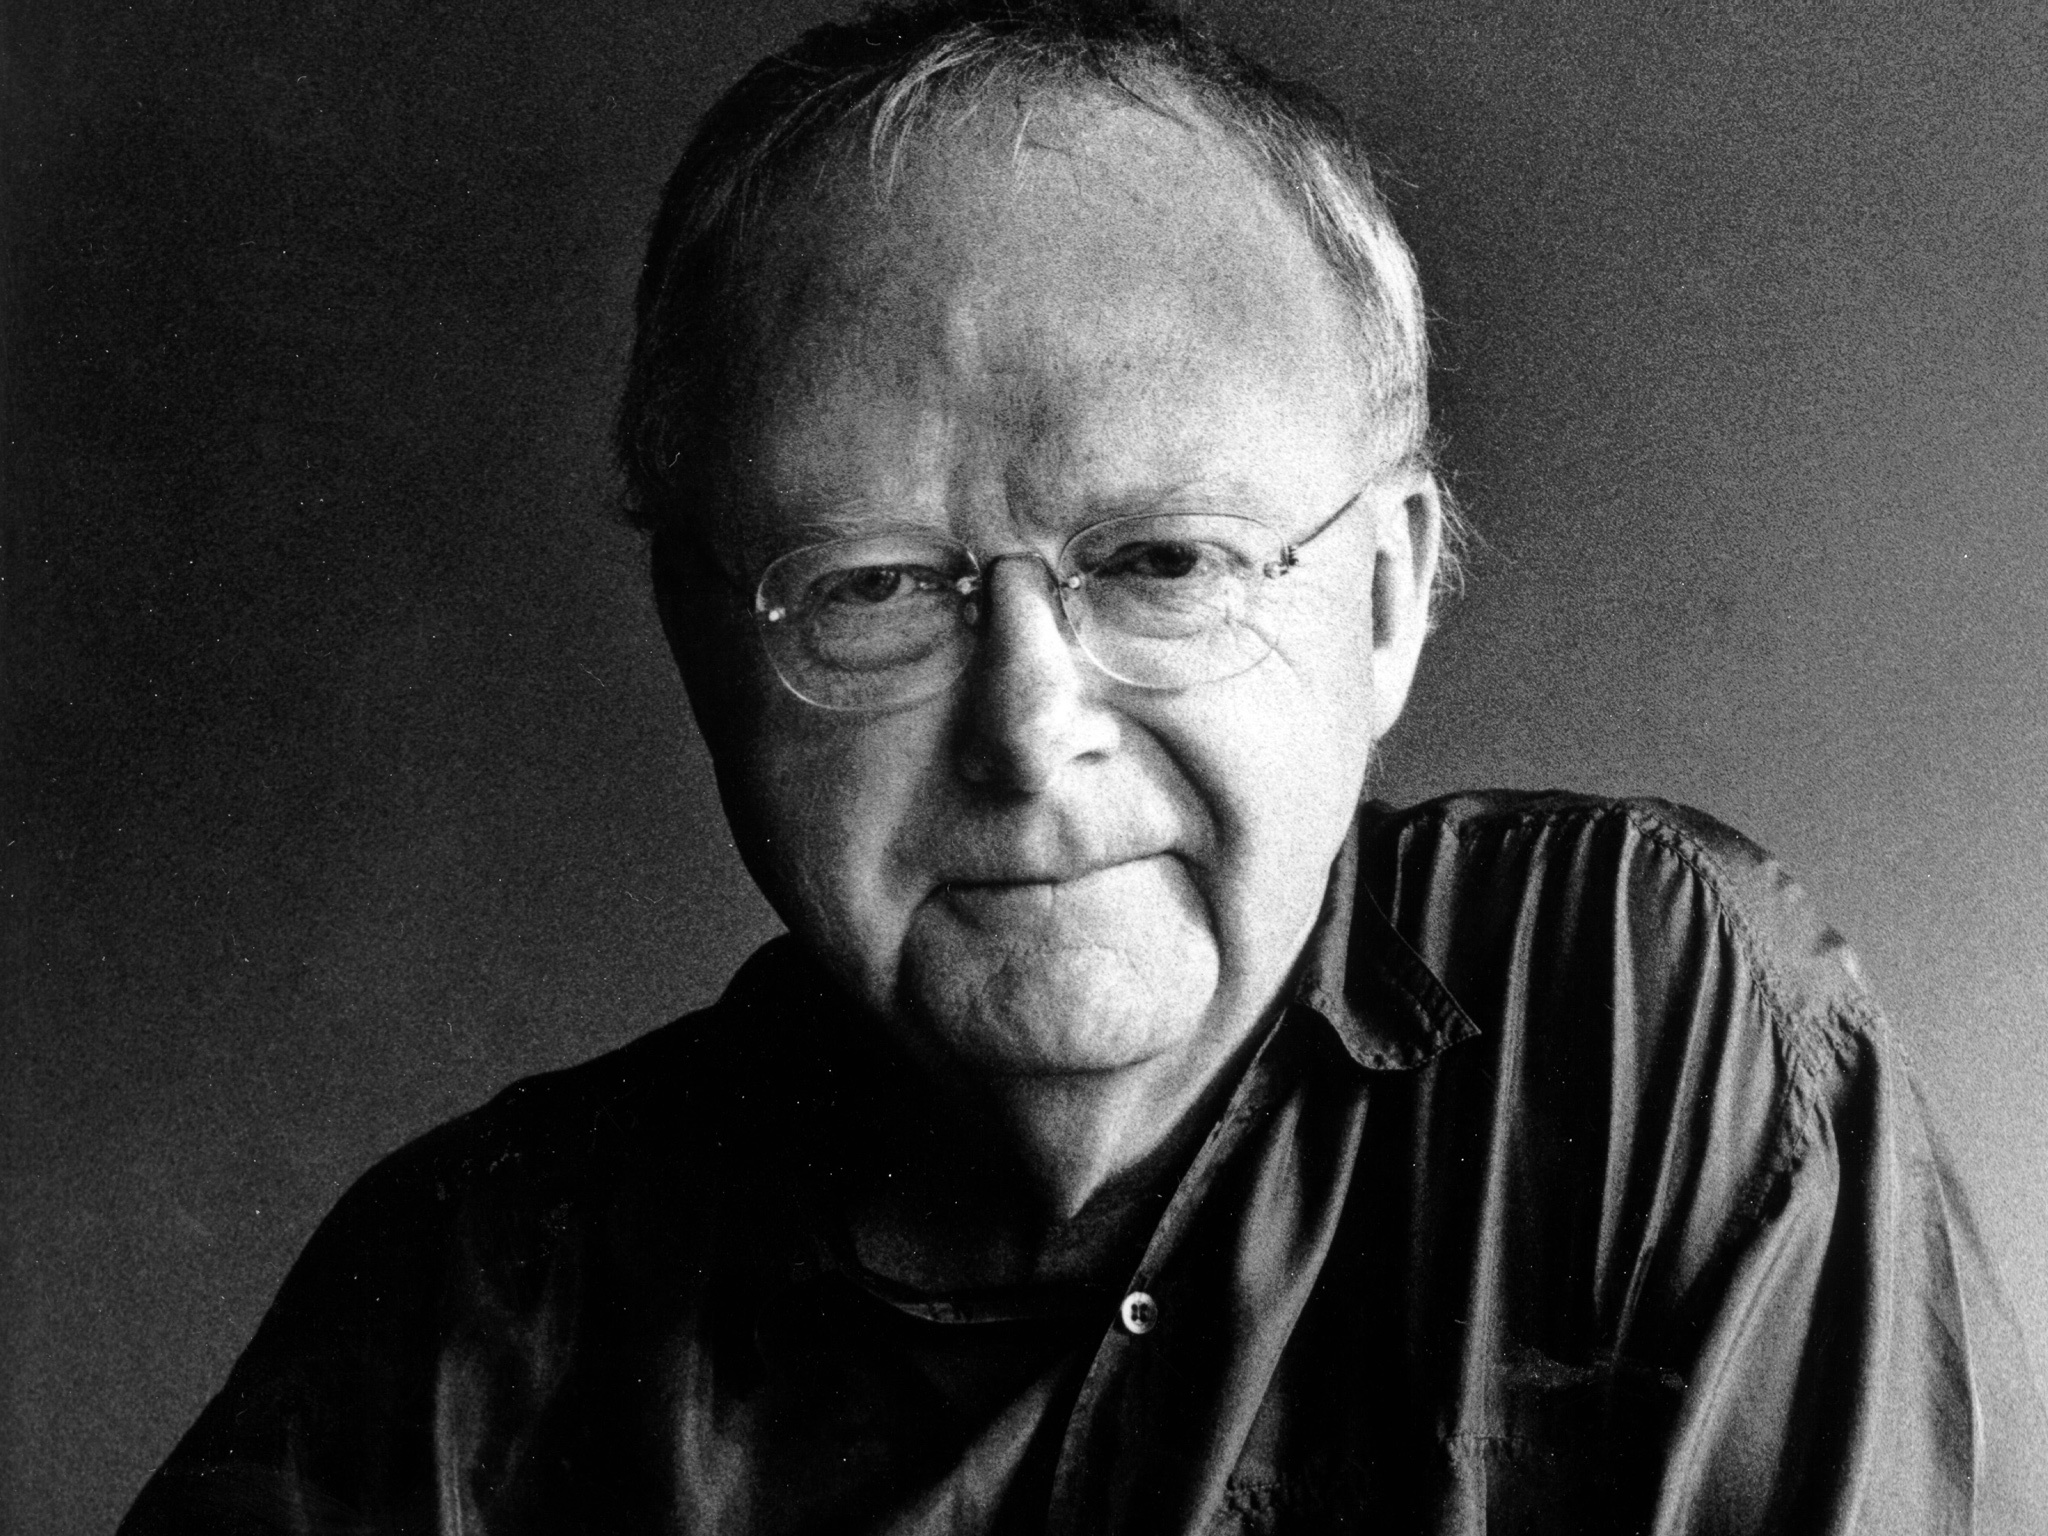 Total Immersion: The Music Of Louis Andriessen